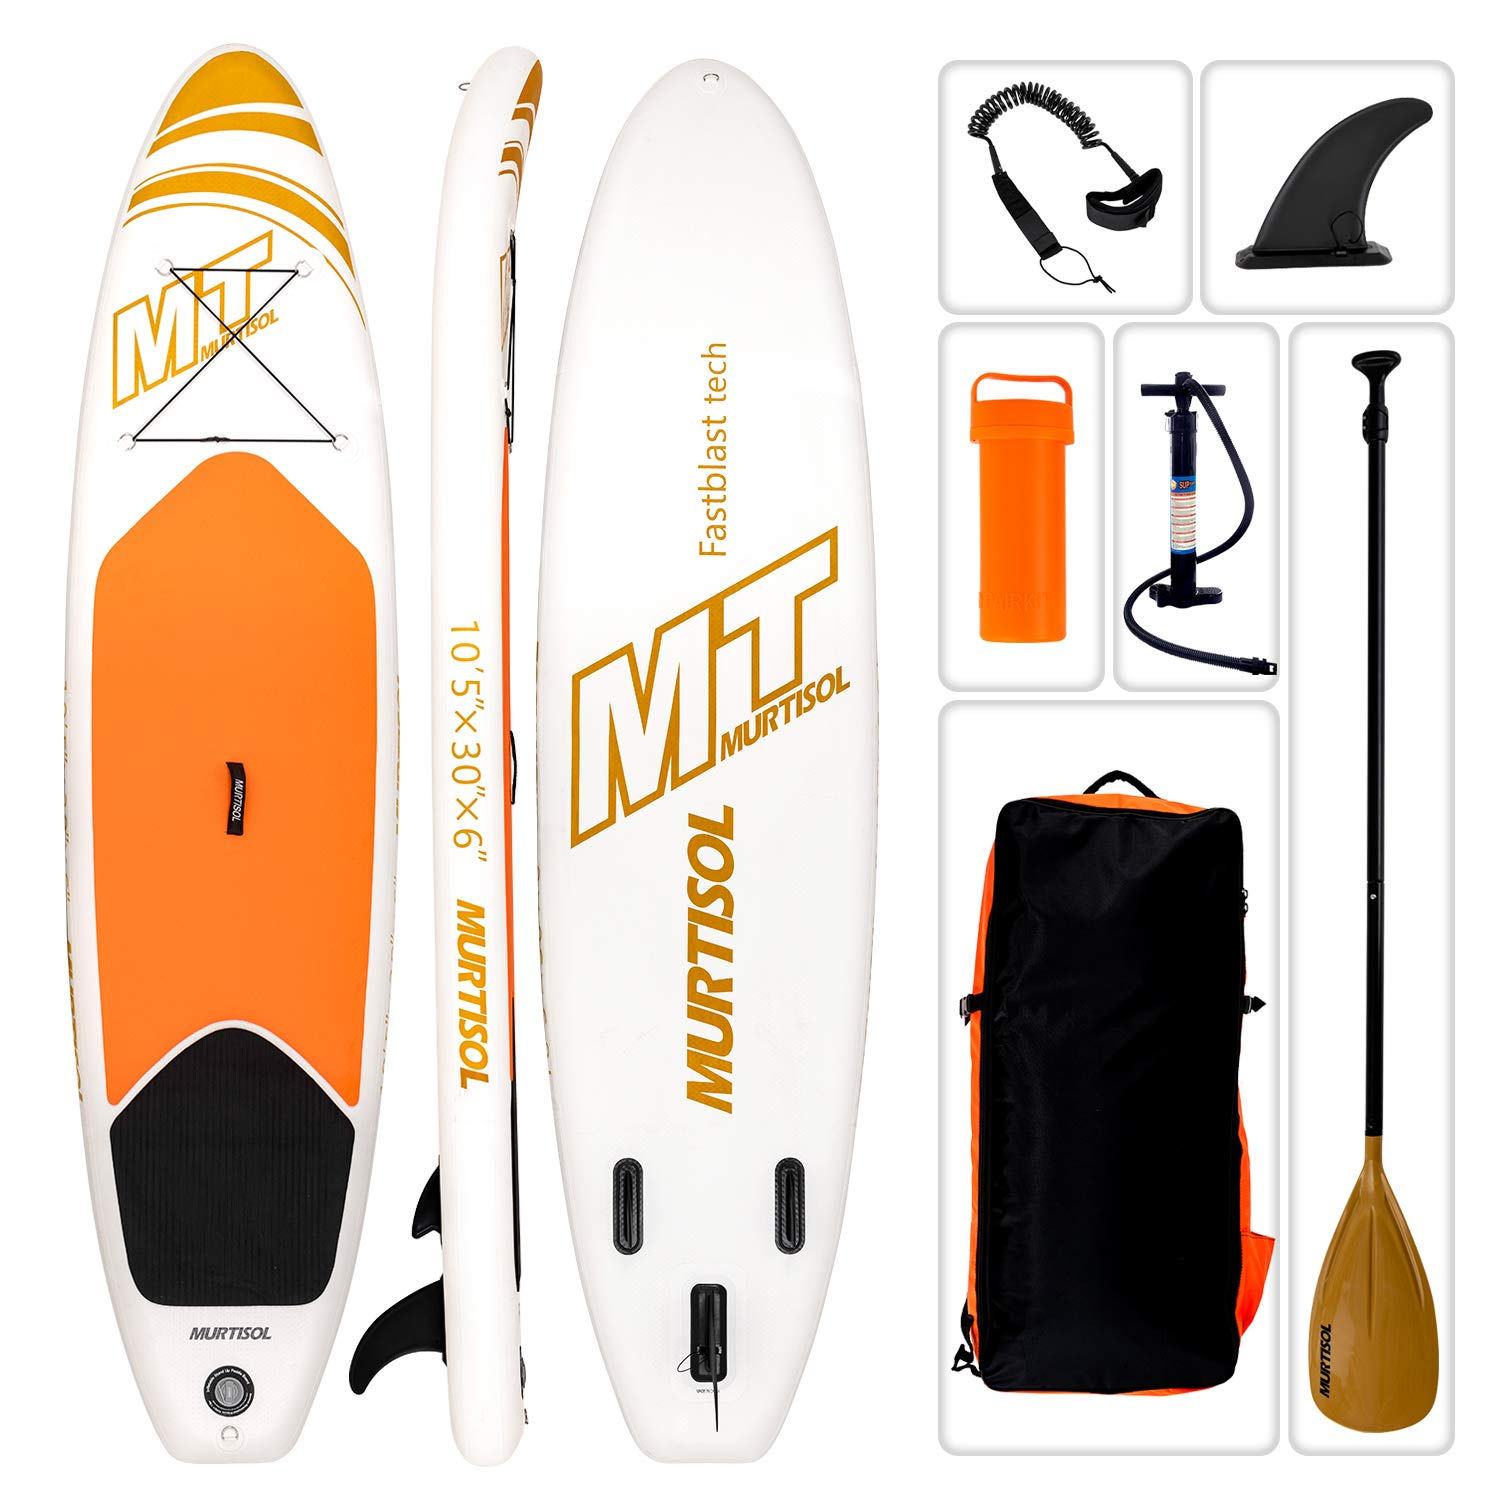 Murtisol 10'5'' Inflatable Stand Up Paddle Board(30in Width), Ultra-Thick Durable PVC, Non-Slip Deck, Premium SUP Accessories, Dual-Action Pump, Safety Ankle Strap, Adjustable Paddle, Yellow by Murtisol